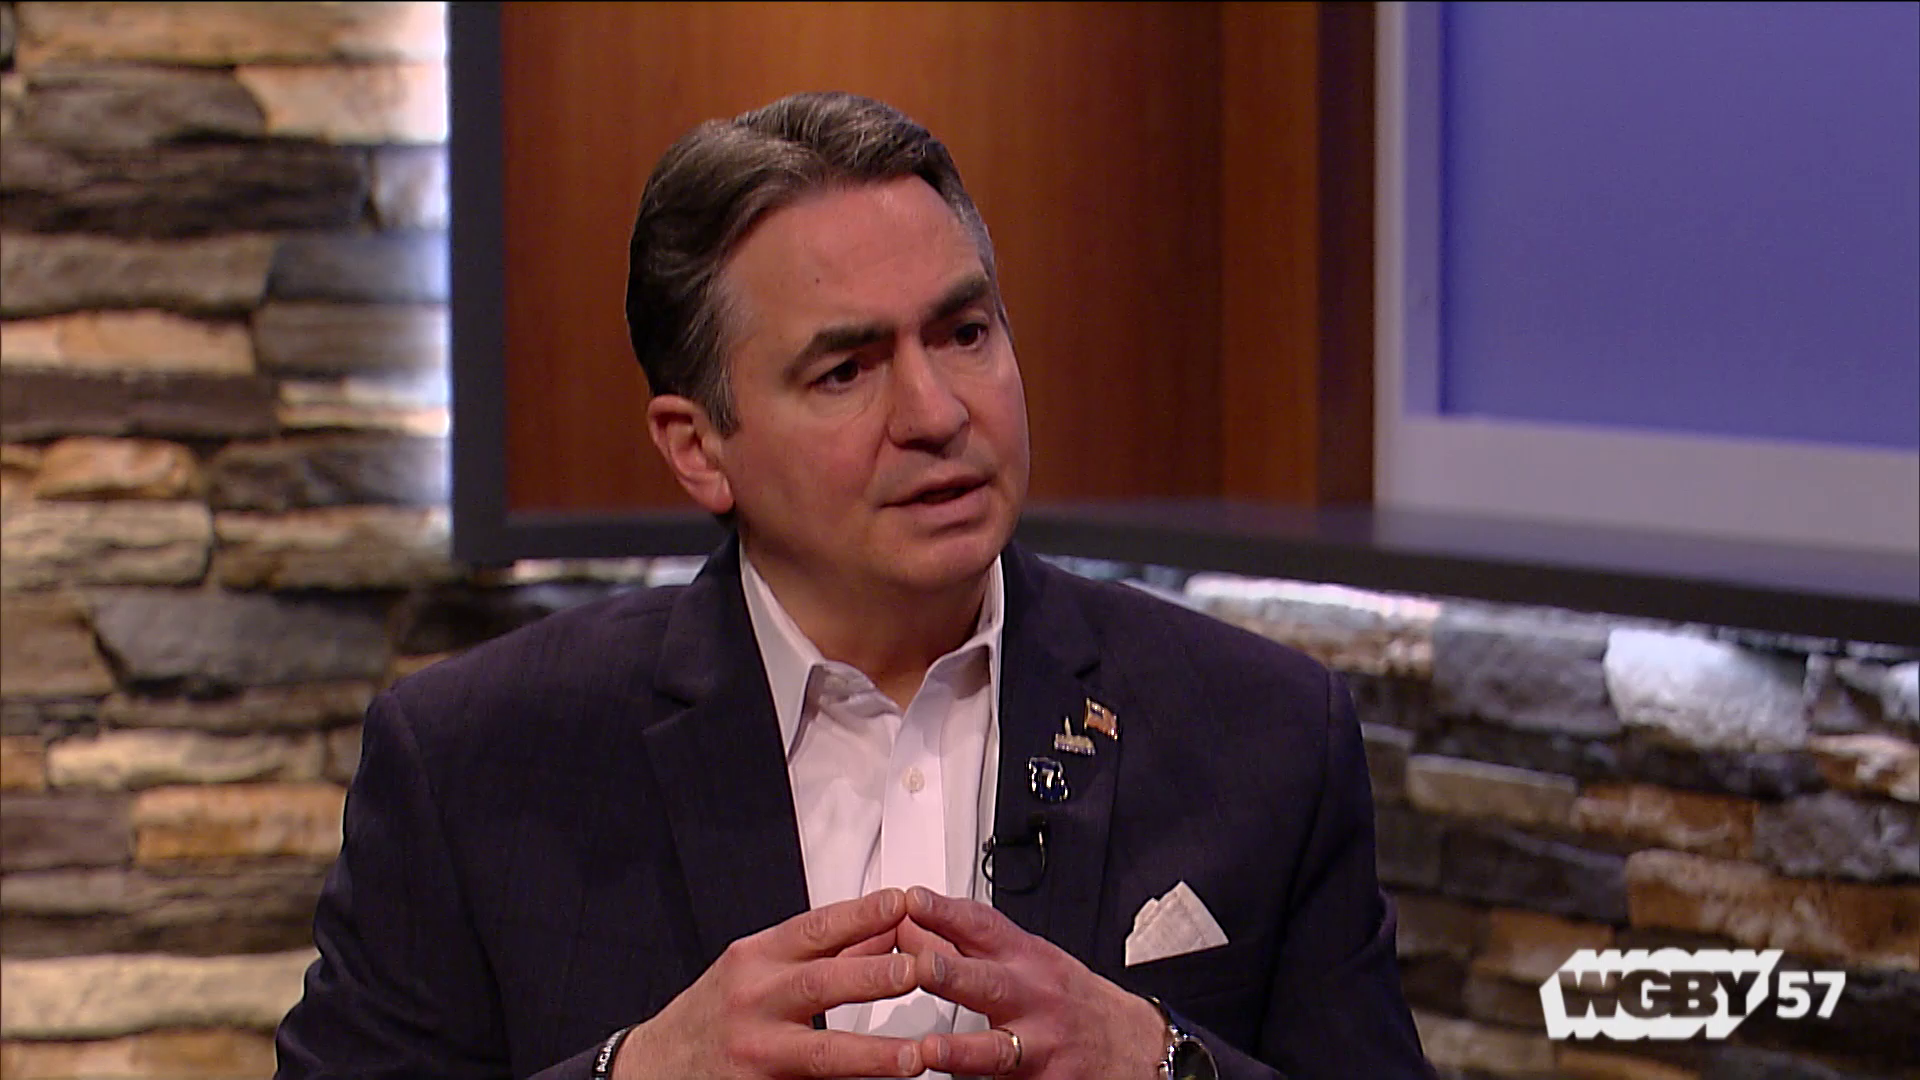 Springfield Mayor Domenic Sarno discusses his support for a bail and judicial reform petition launched in the wake of Yarmouth Police Officer Sean Gannon's murder. Sarno also discusses his own his proposed bail reform legislation.